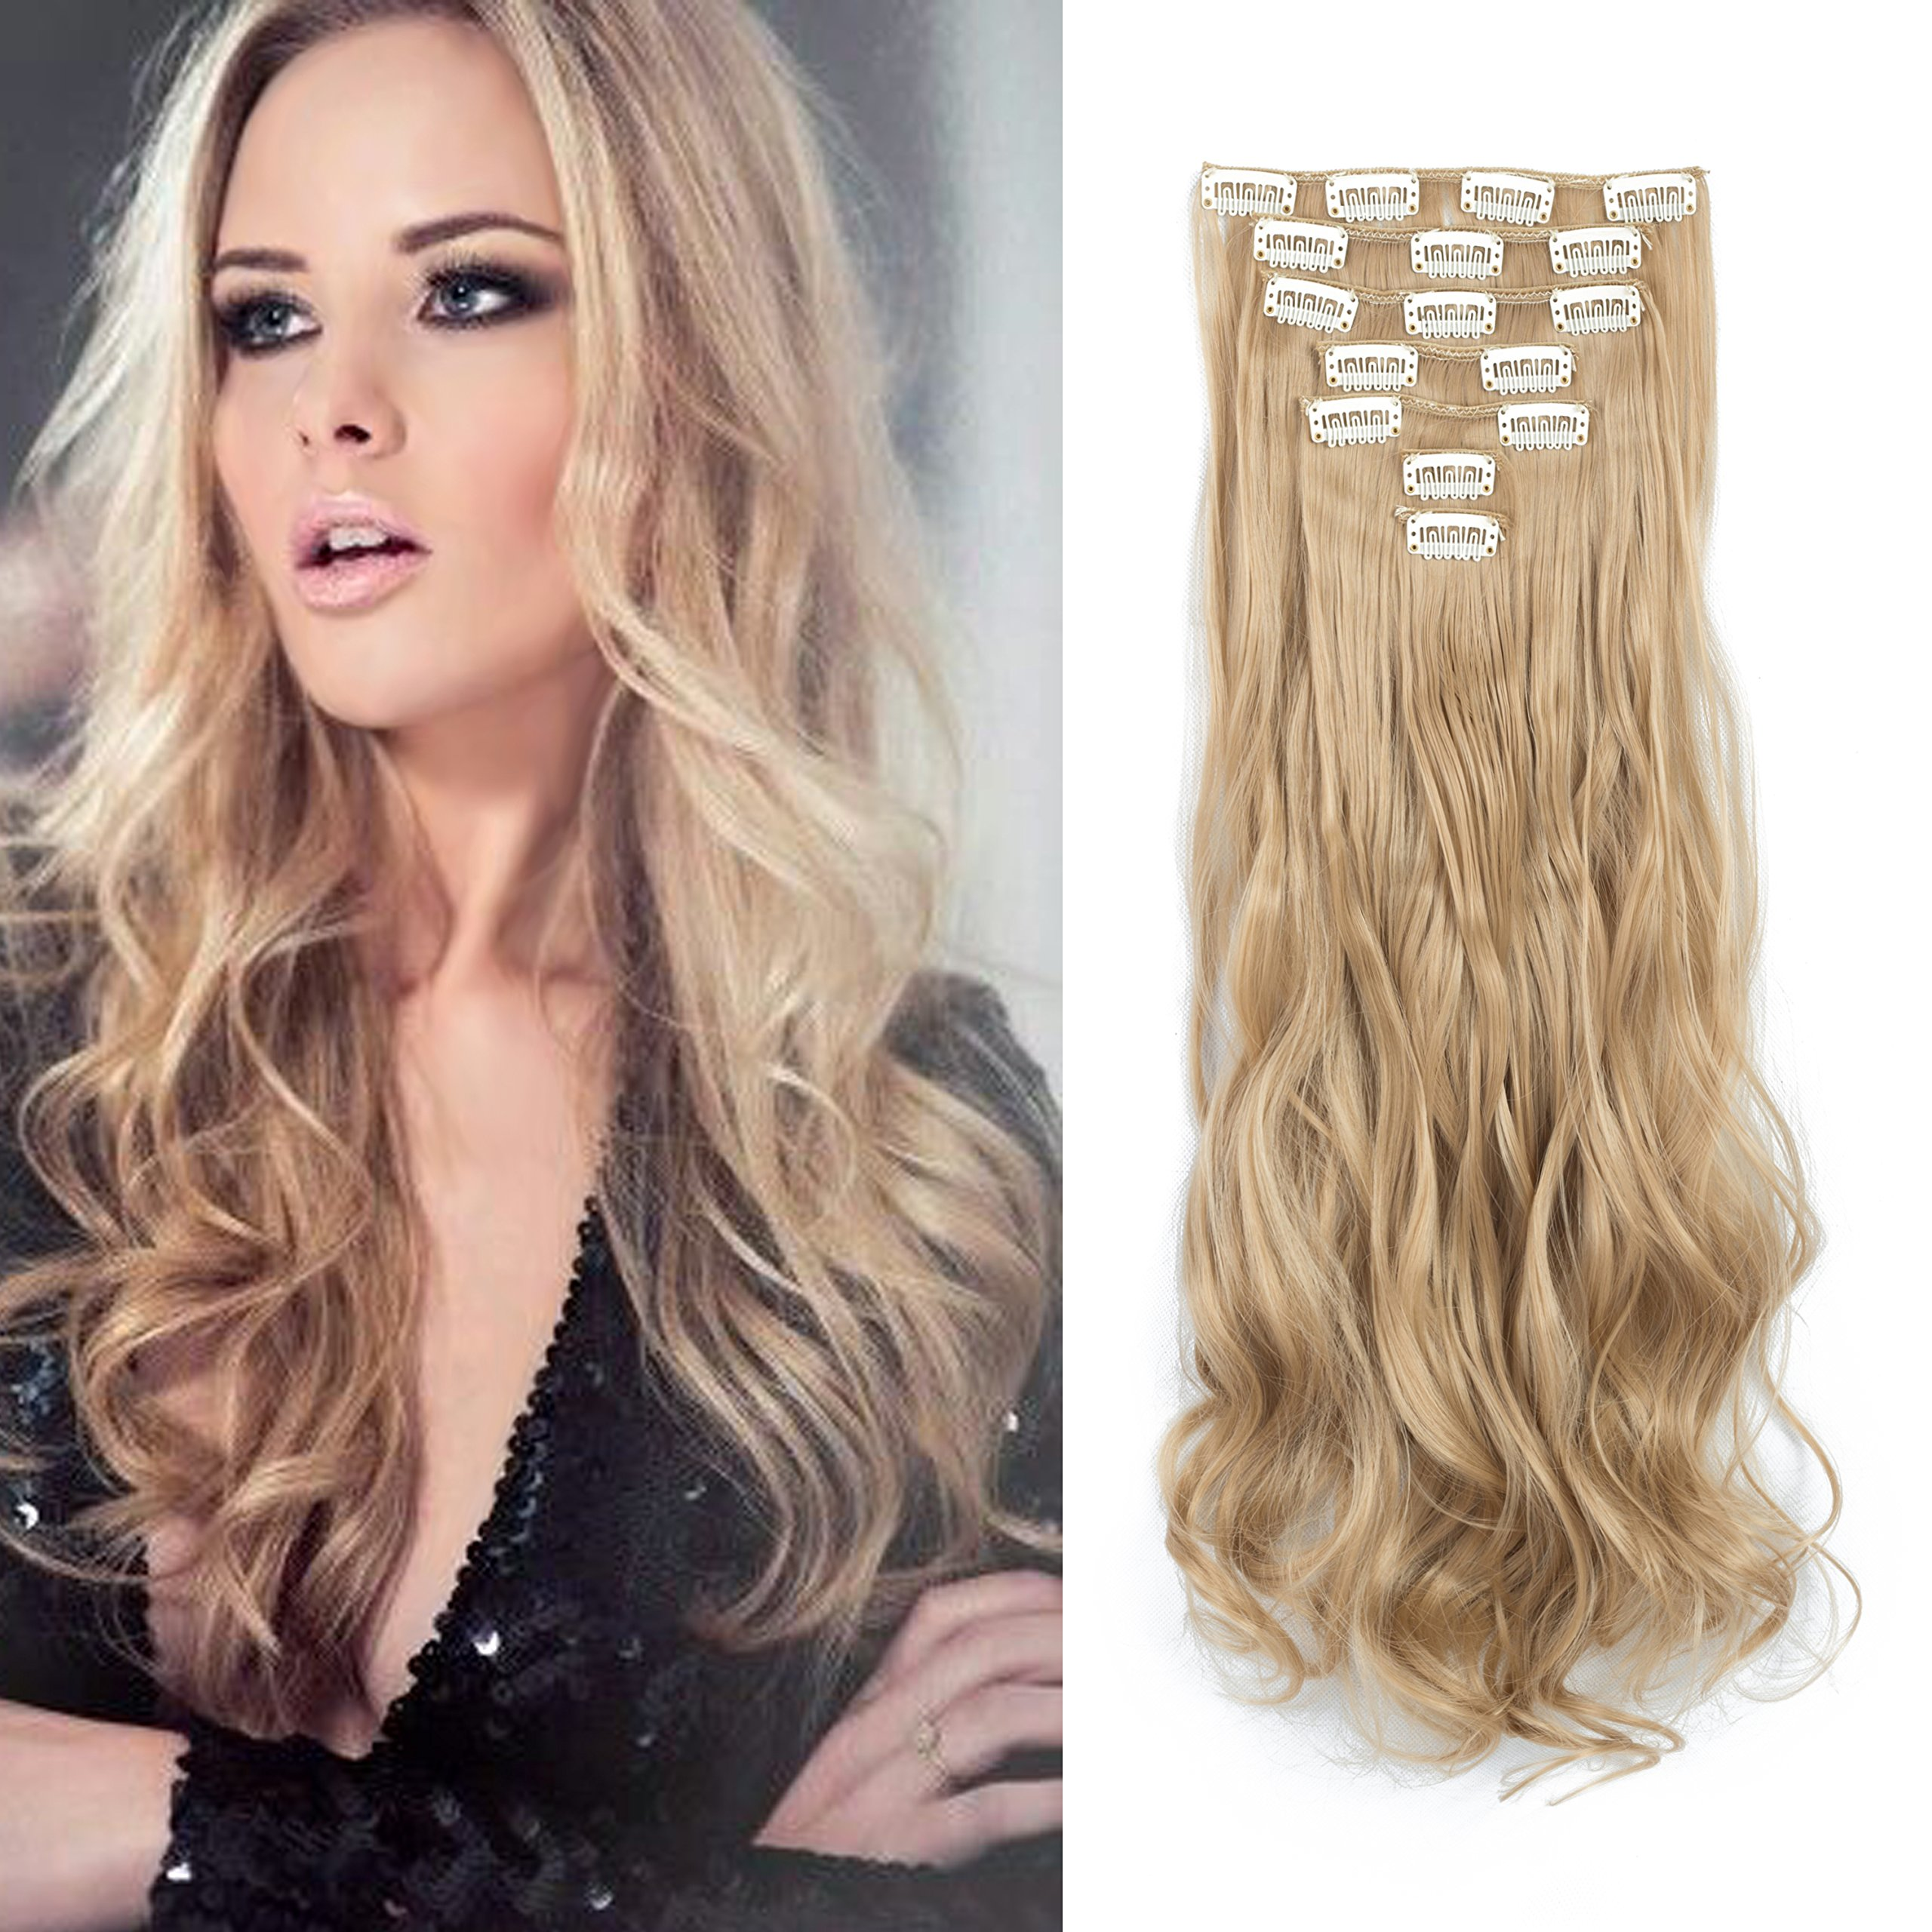 Amazon 7pcsset Clip In Hair Extensions 20inch Long Wavy Heat